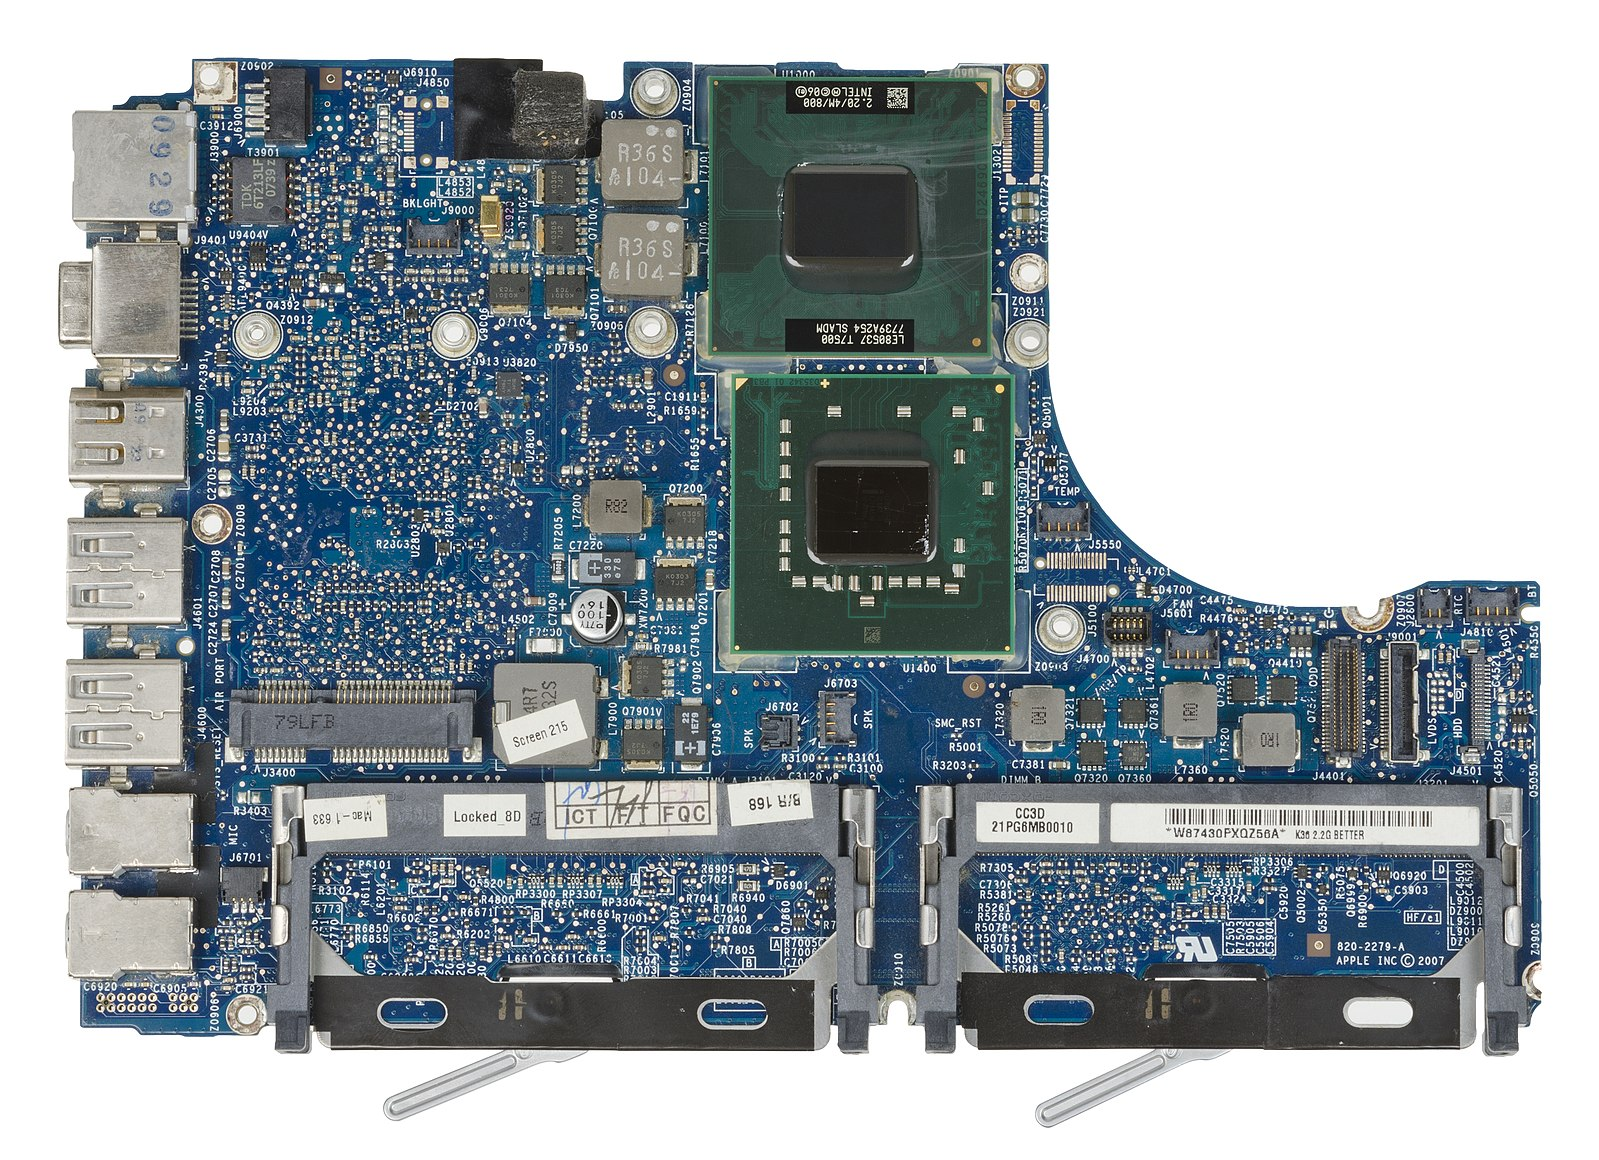 Difference Between Backplane and Motherboard